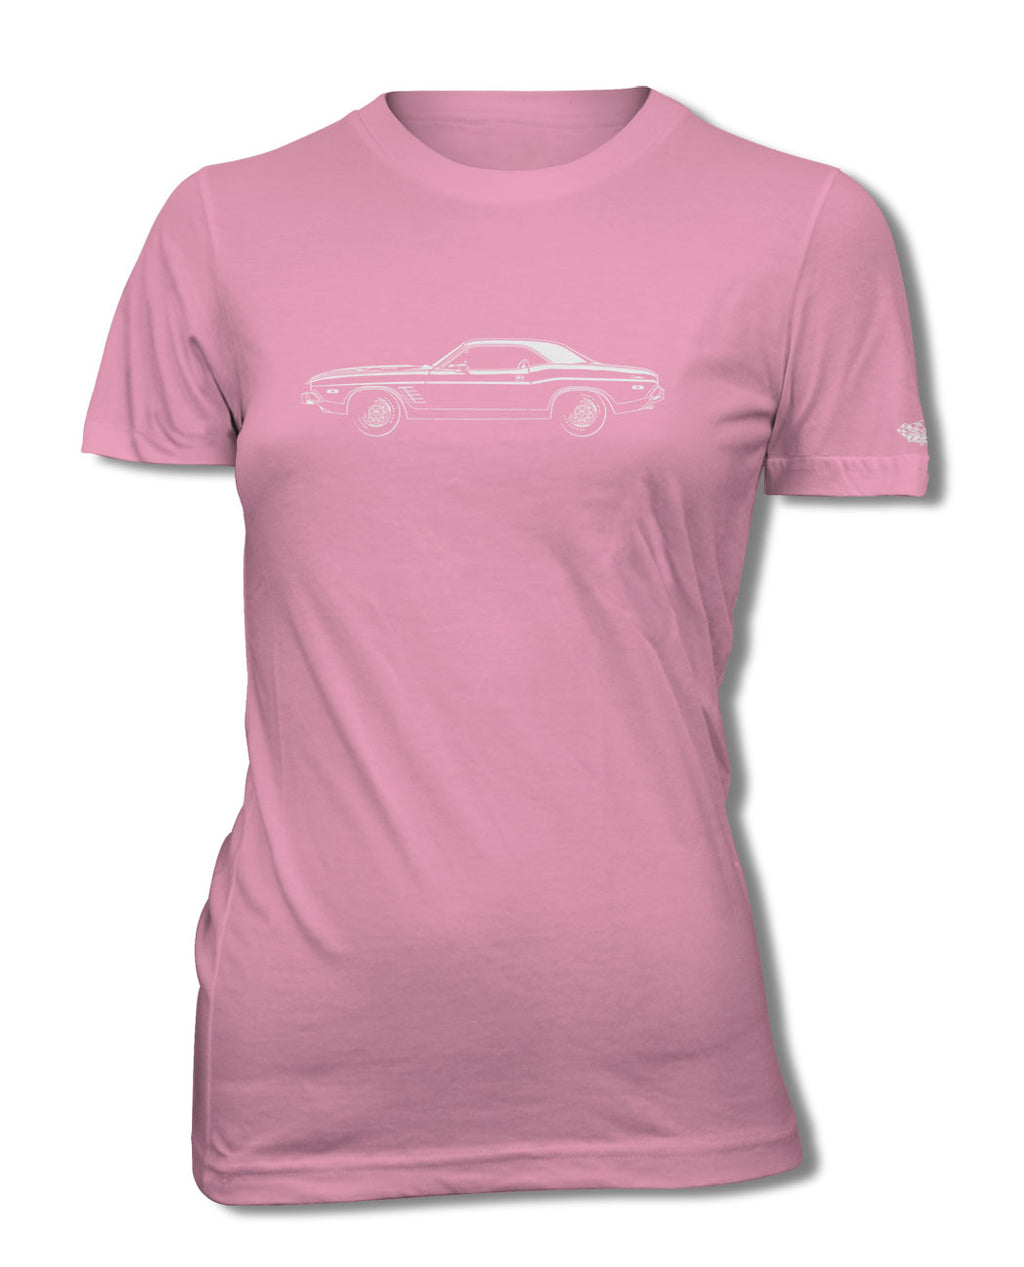 1973 Dodge Challenger Rallye Coupe T-Shirt - Women - Side View